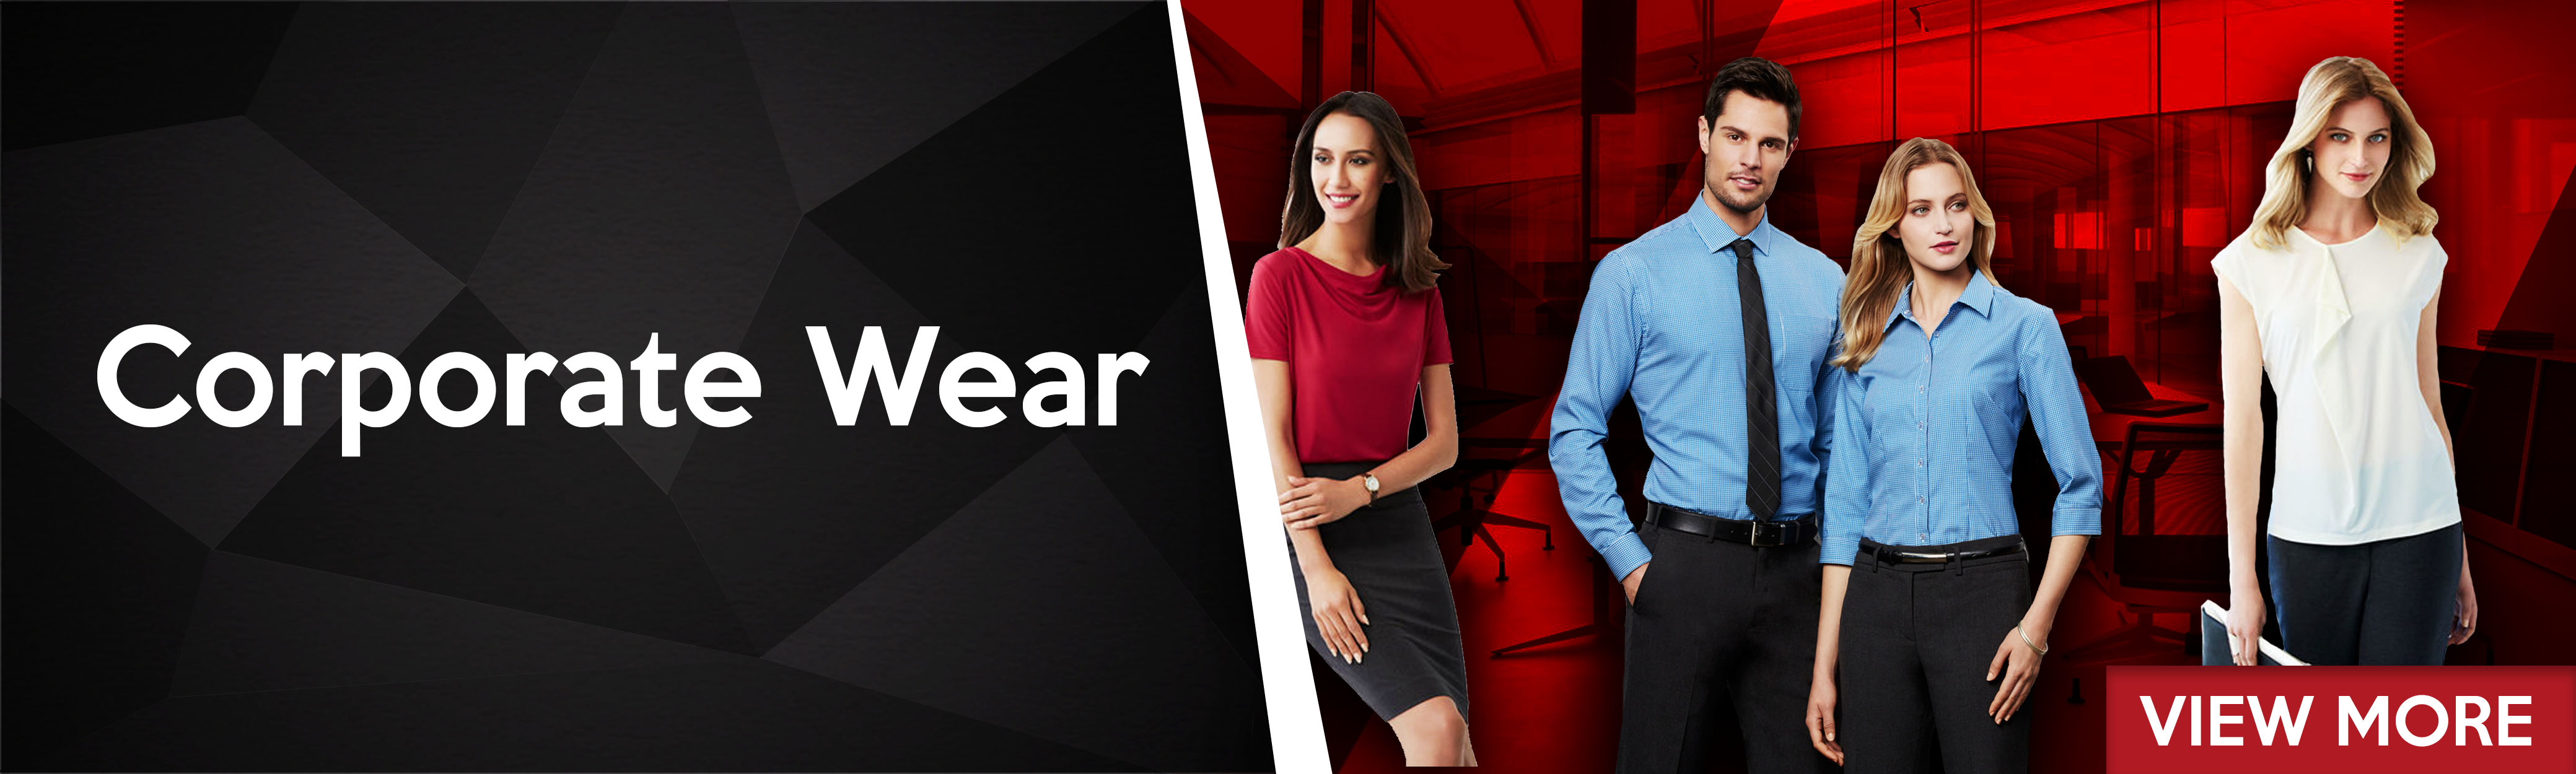 Online Work Wear provides a comprehensive range of Corporate Apparel, Corporate Clothing & Office Wear.